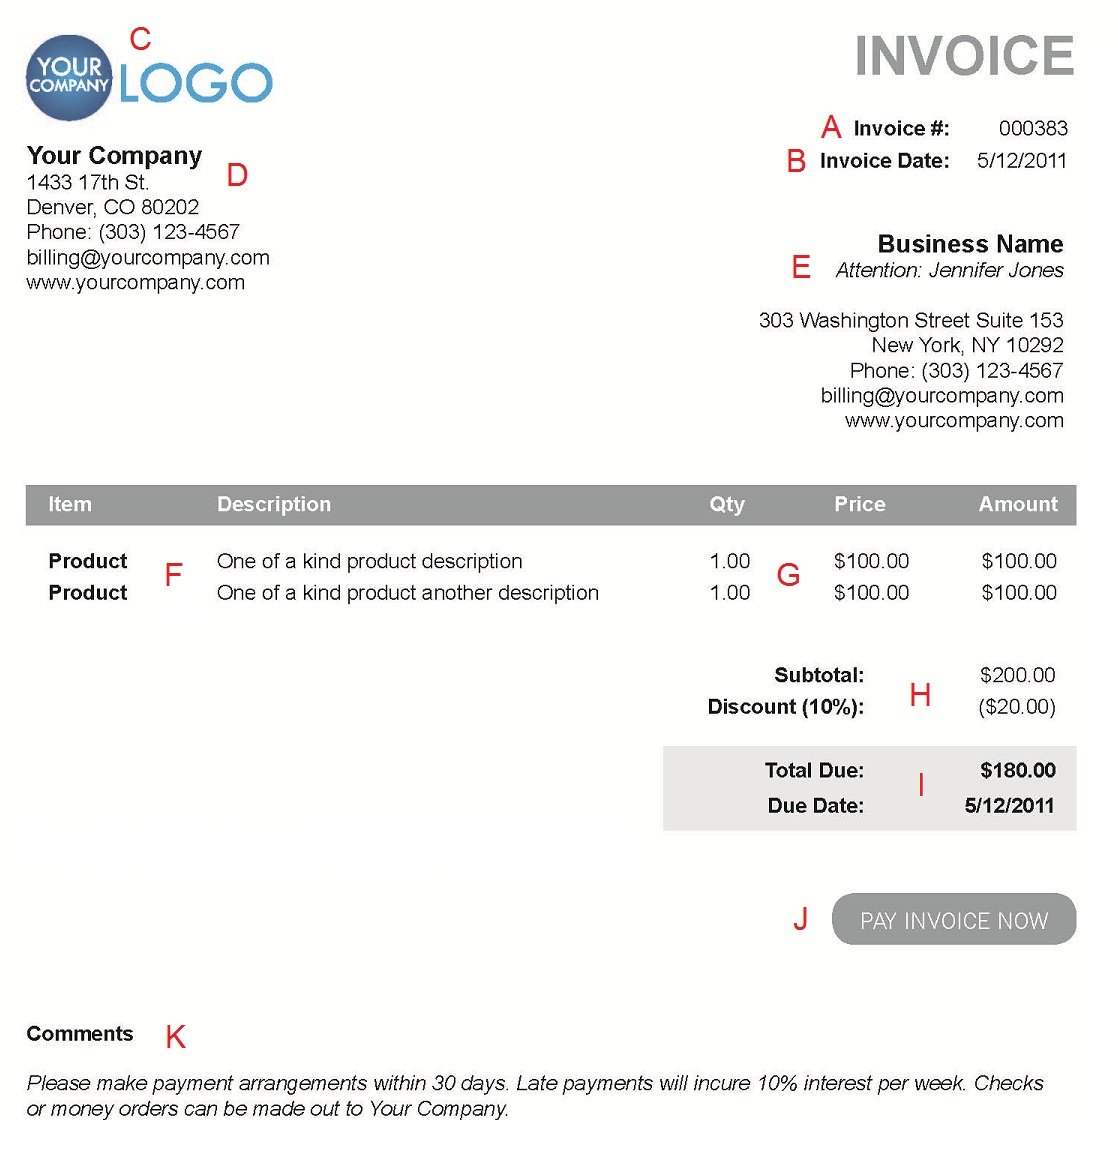 Ebitus  Winsome The  Different Sections Of An Electronic Payment Invoice With Licious A  With Amazing Simple Invoices Template Also Consumer Reports Invoice Price In Addition Standard Invoice Template Free And Invoice Cost Of New Cars As Well As Make Invoice In Excel Additionally Training Invoice Template From Paysimplecom With Ebitus  Licious The  Different Sections Of An Electronic Payment Invoice With Amazing A  And Winsome Simple Invoices Template Also Consumer Reports Invoice Price In Addition Standard Invoice Template Free From Paysimplecom